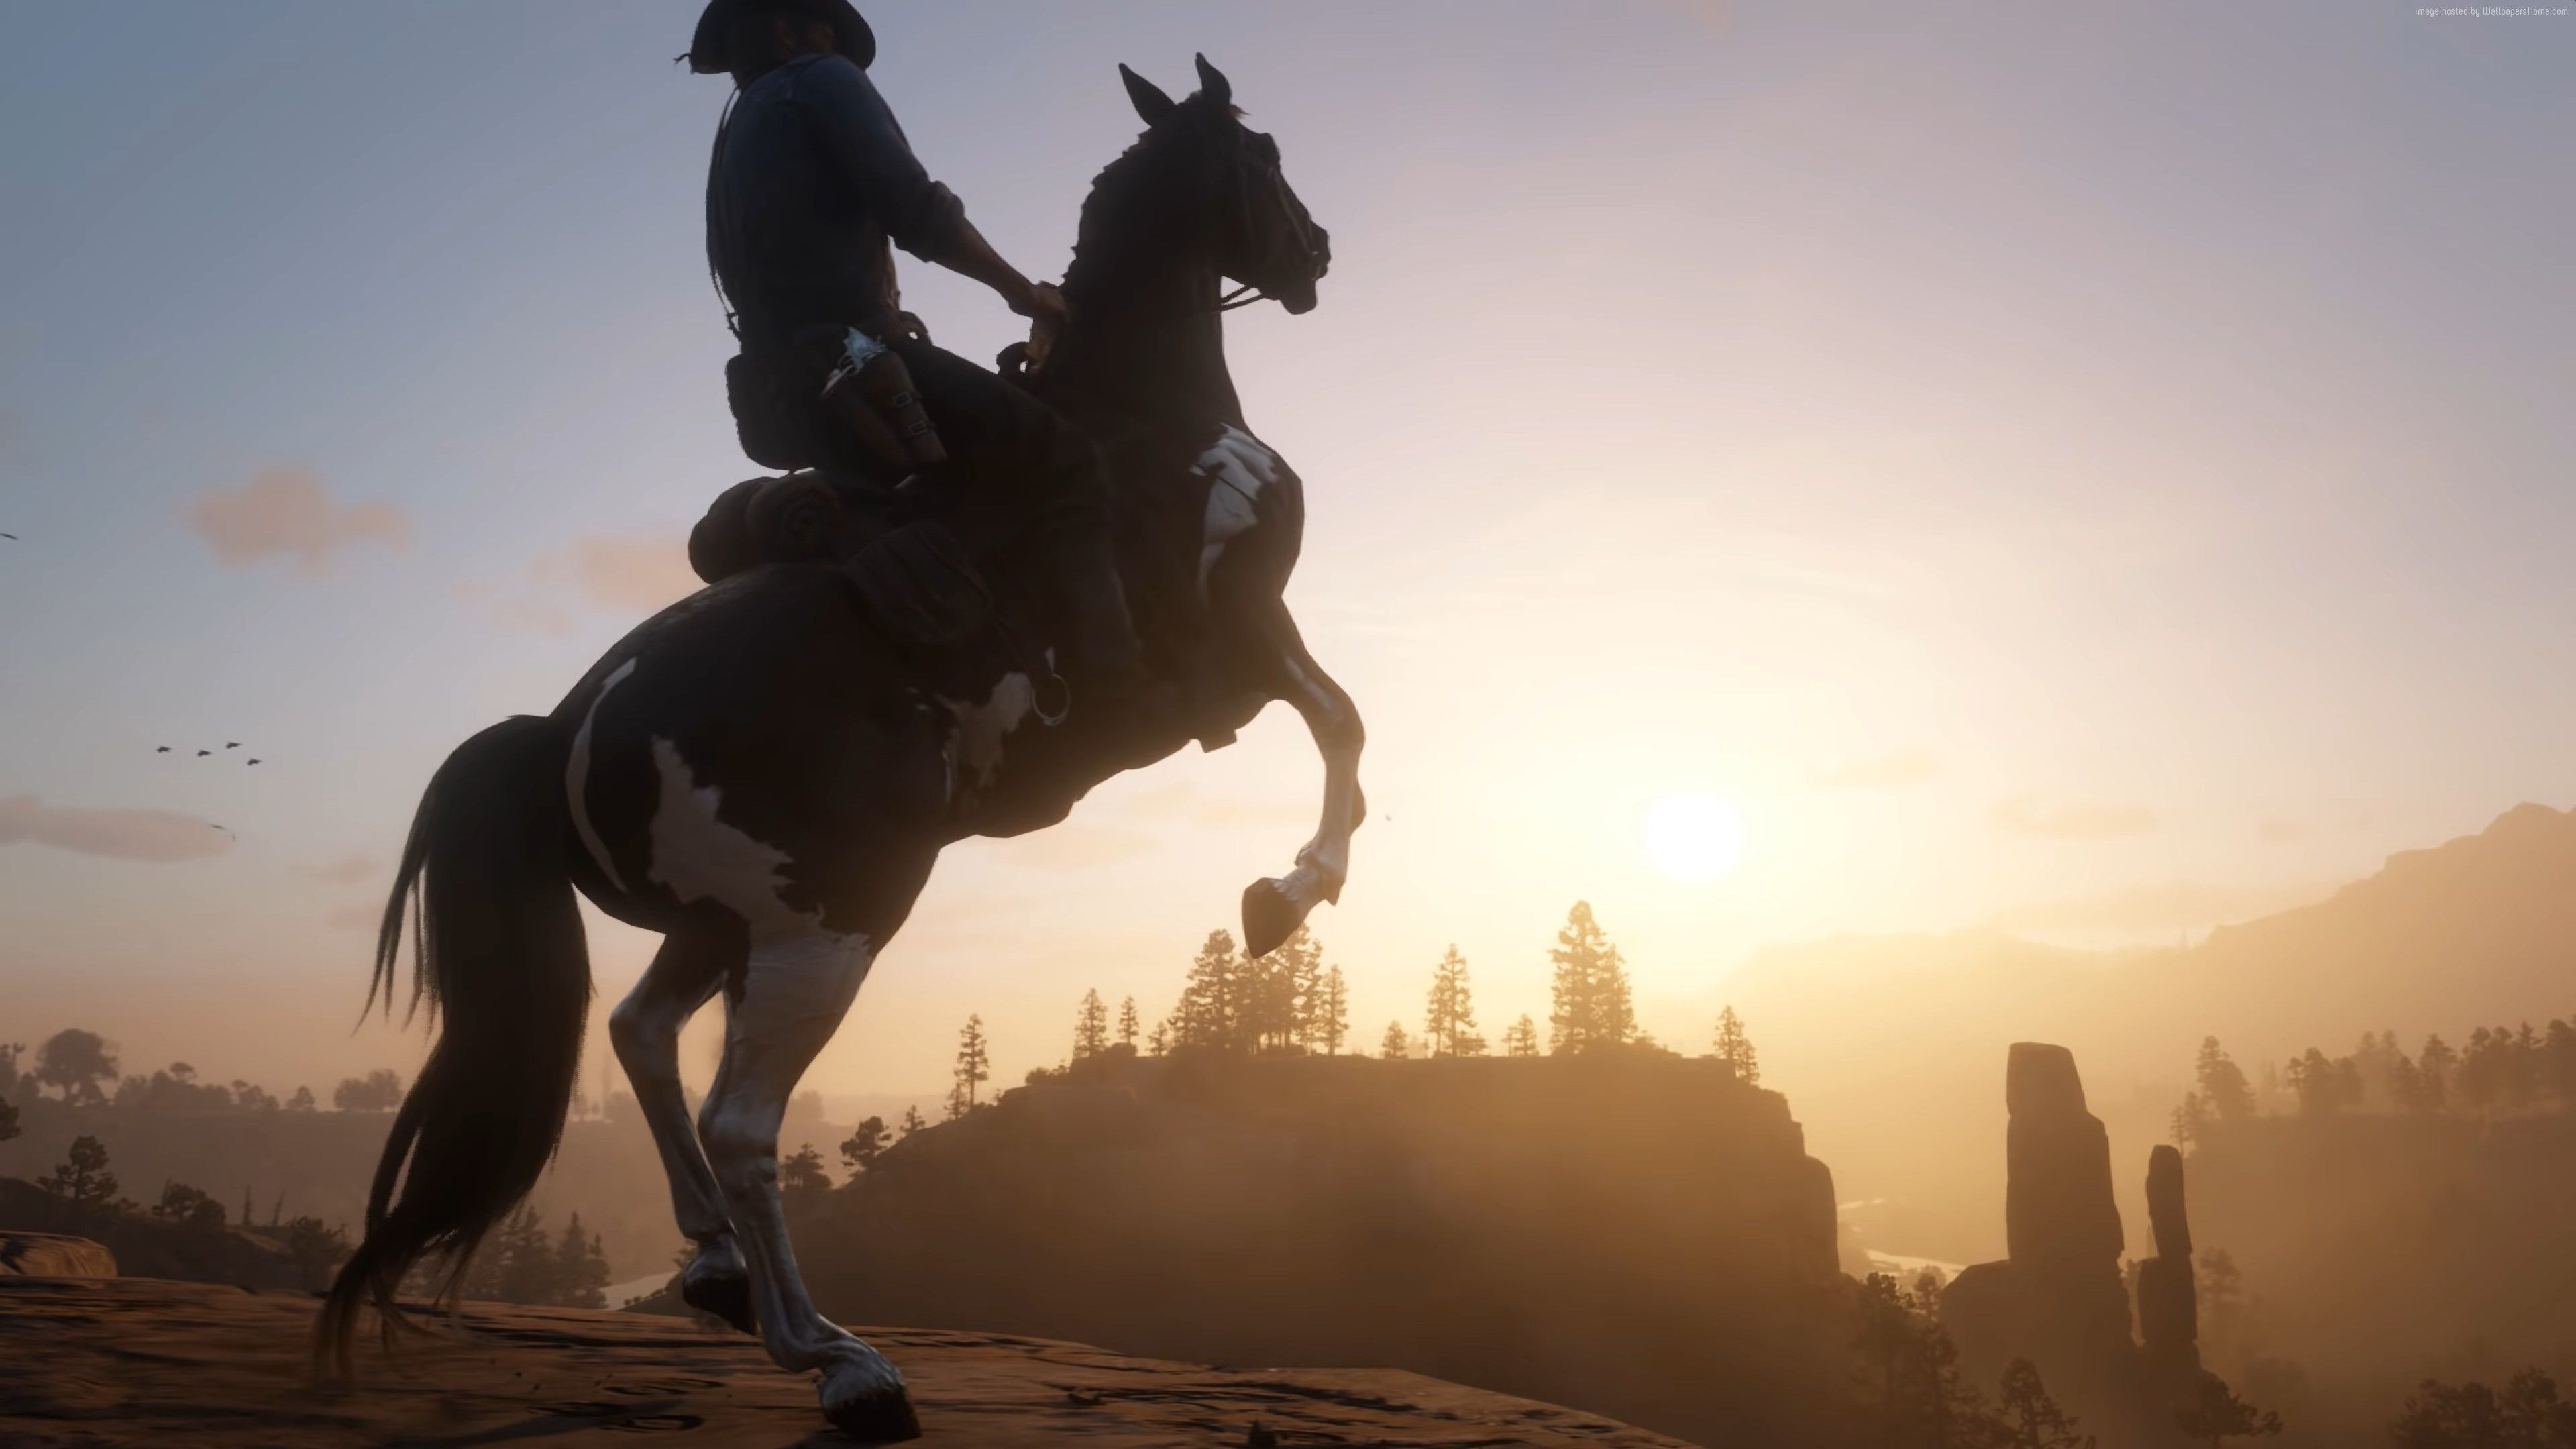 Horse Red Dead Redemption 2 Wallpapers Top Free Horse Red Dead